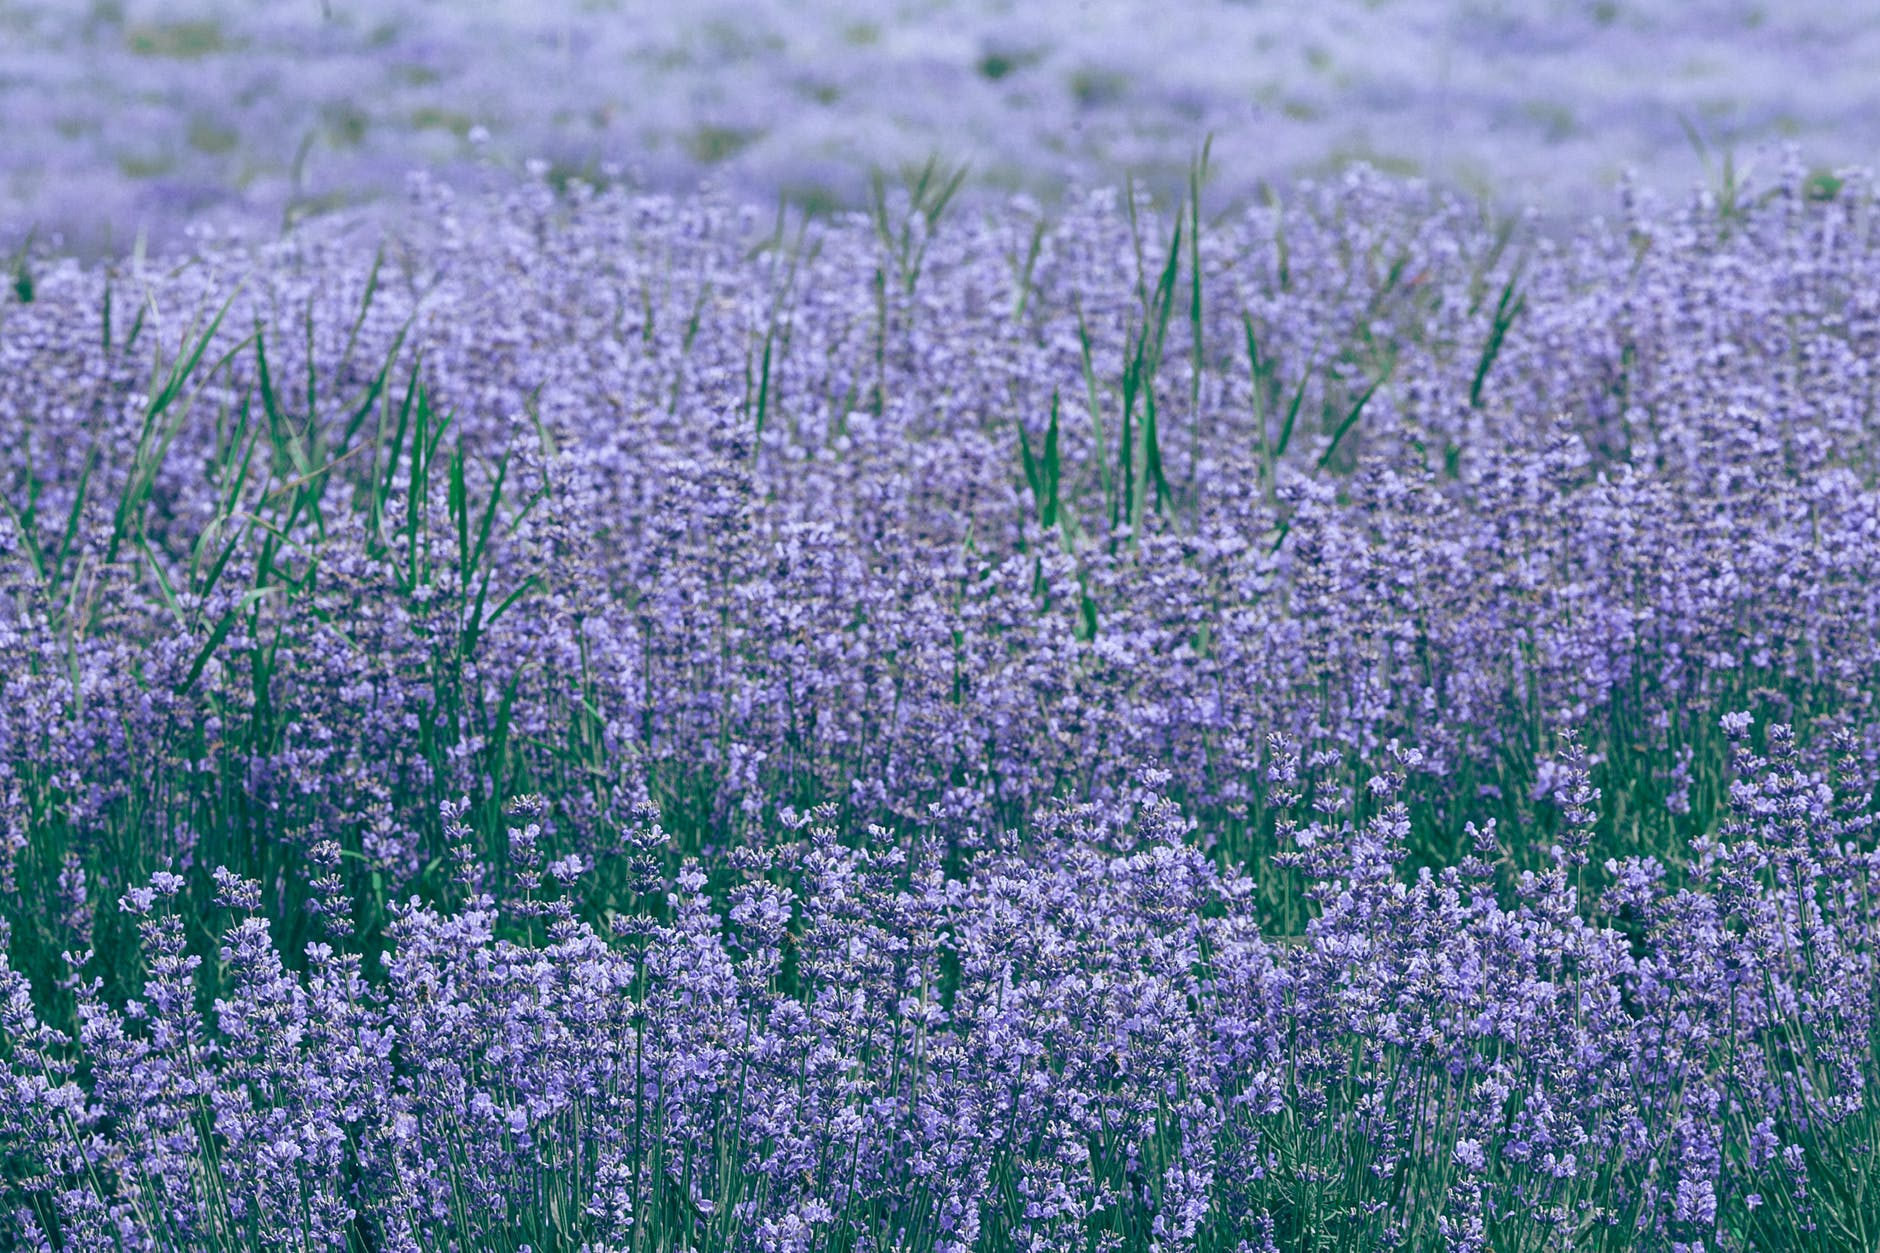 lavender field with blooming violet flowers